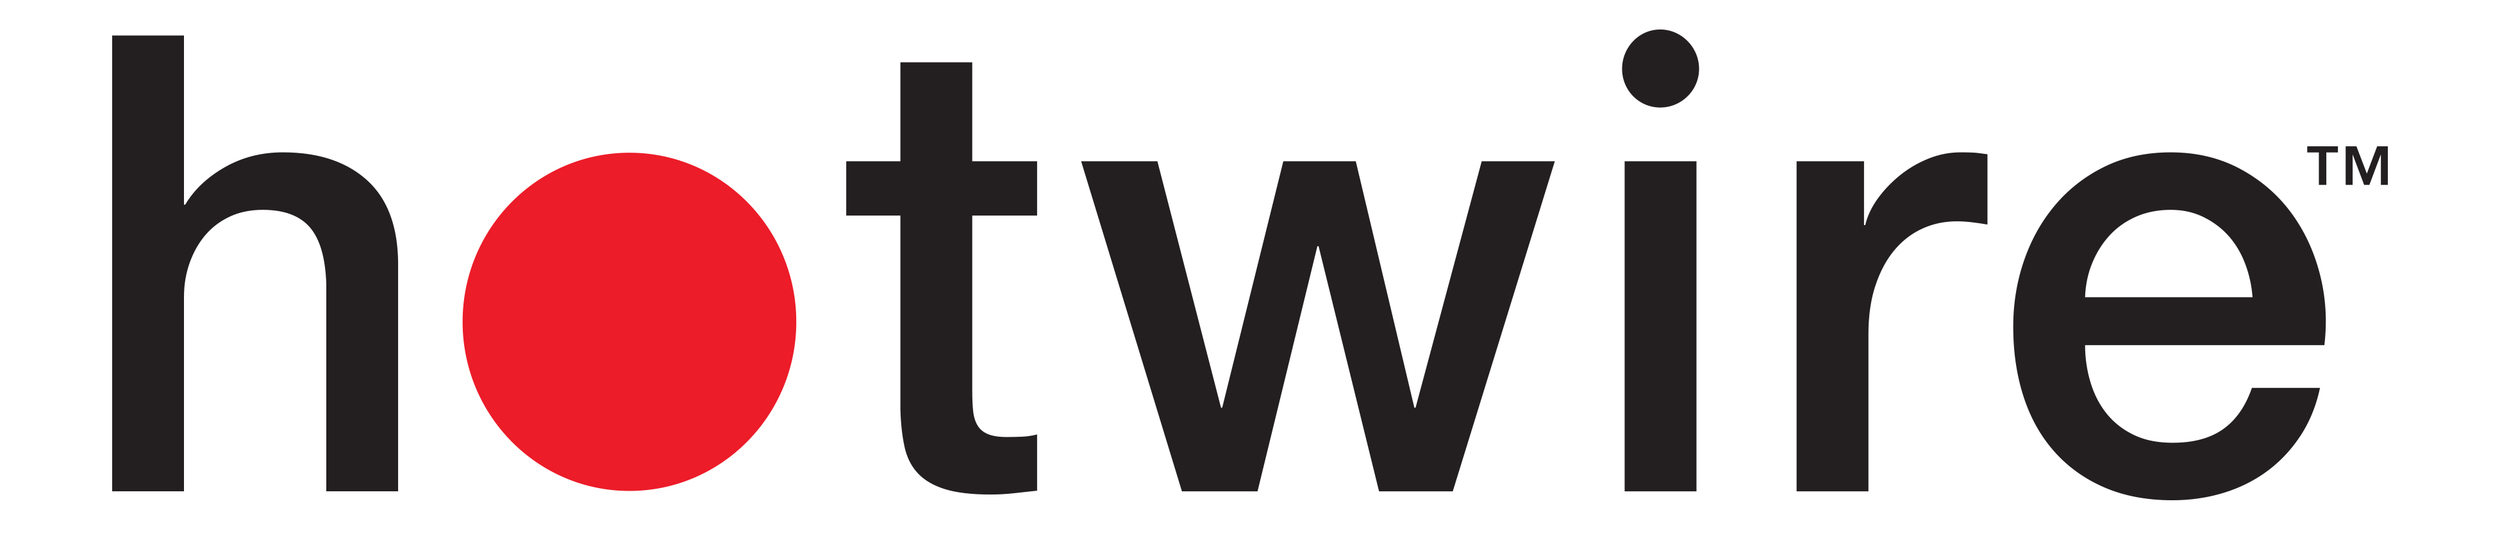 7050451-hotwire-new-brand-logo-original.jpg